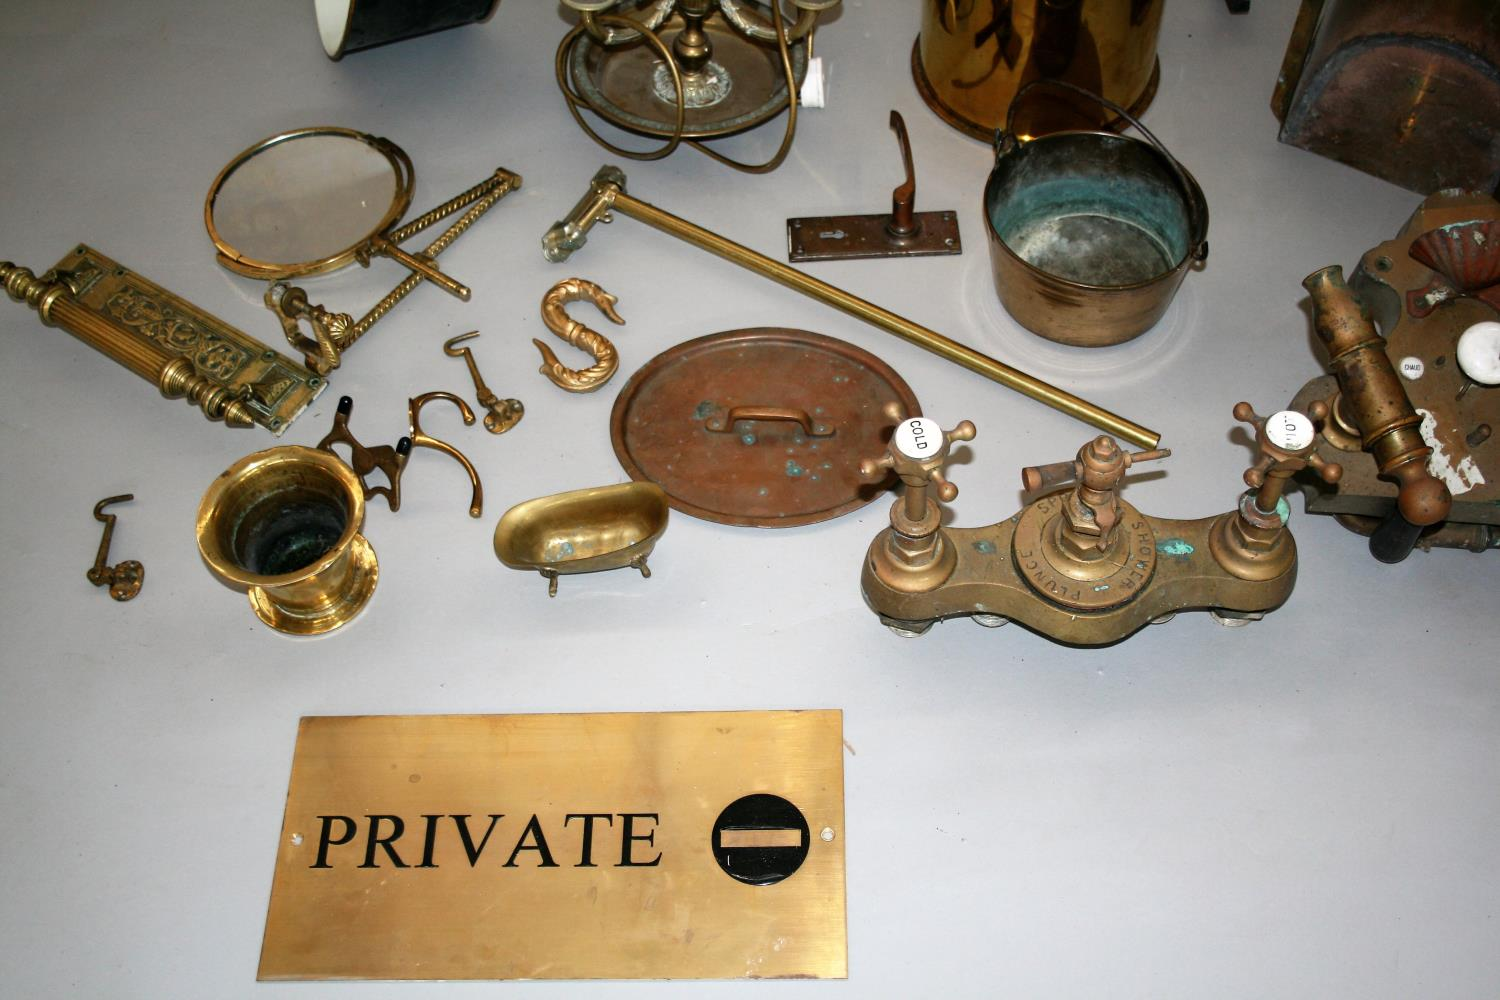 Collection of quality antique brass items, lamp, private sign etc - Image 2 of 4